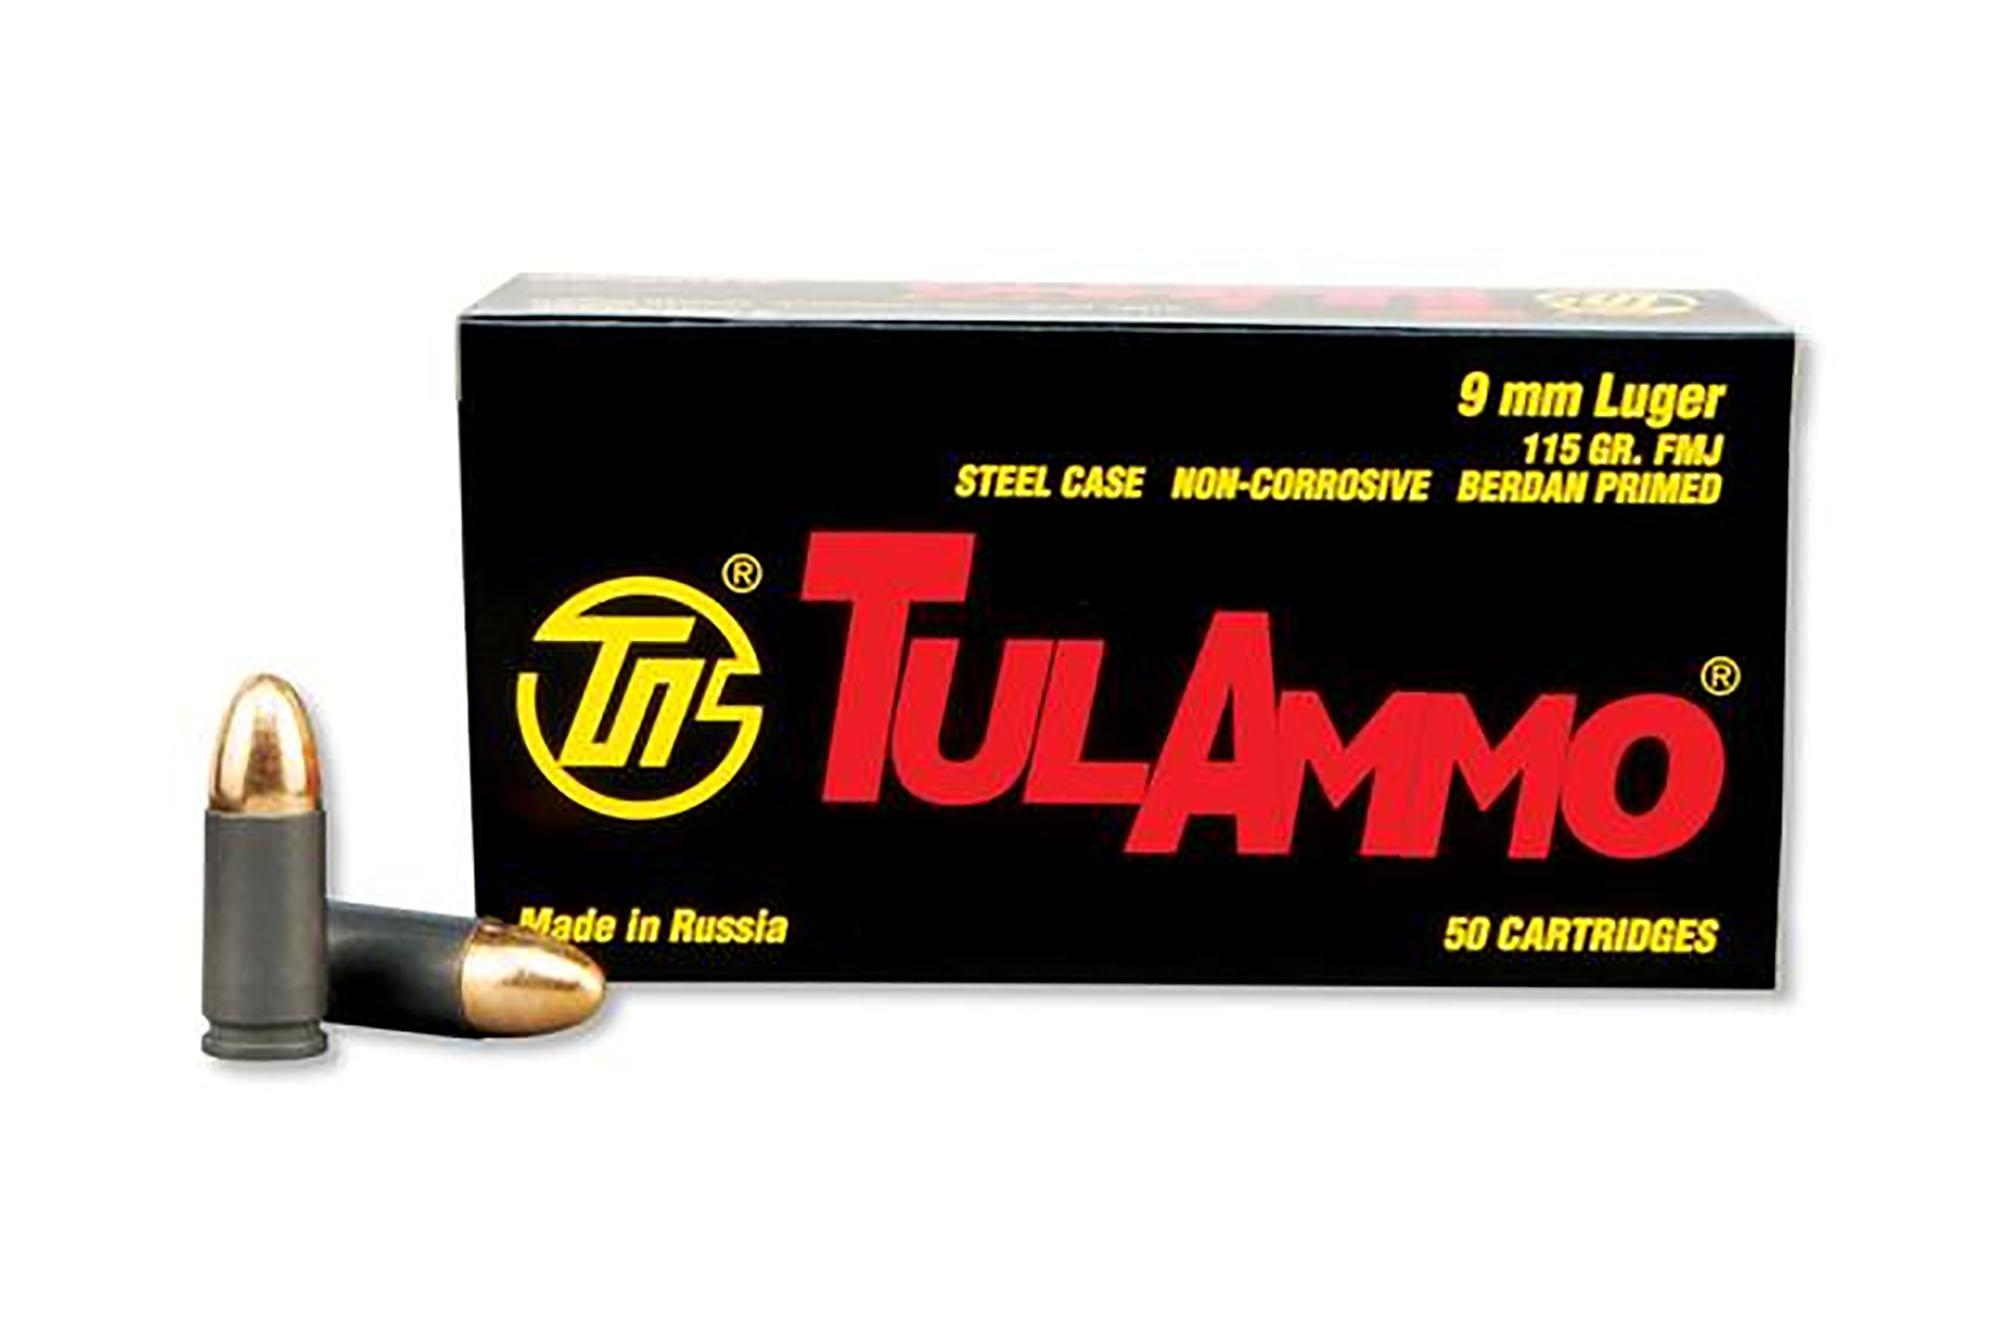 TulAmmo 9mm steel case ammunition comes in a box of 50 rounds